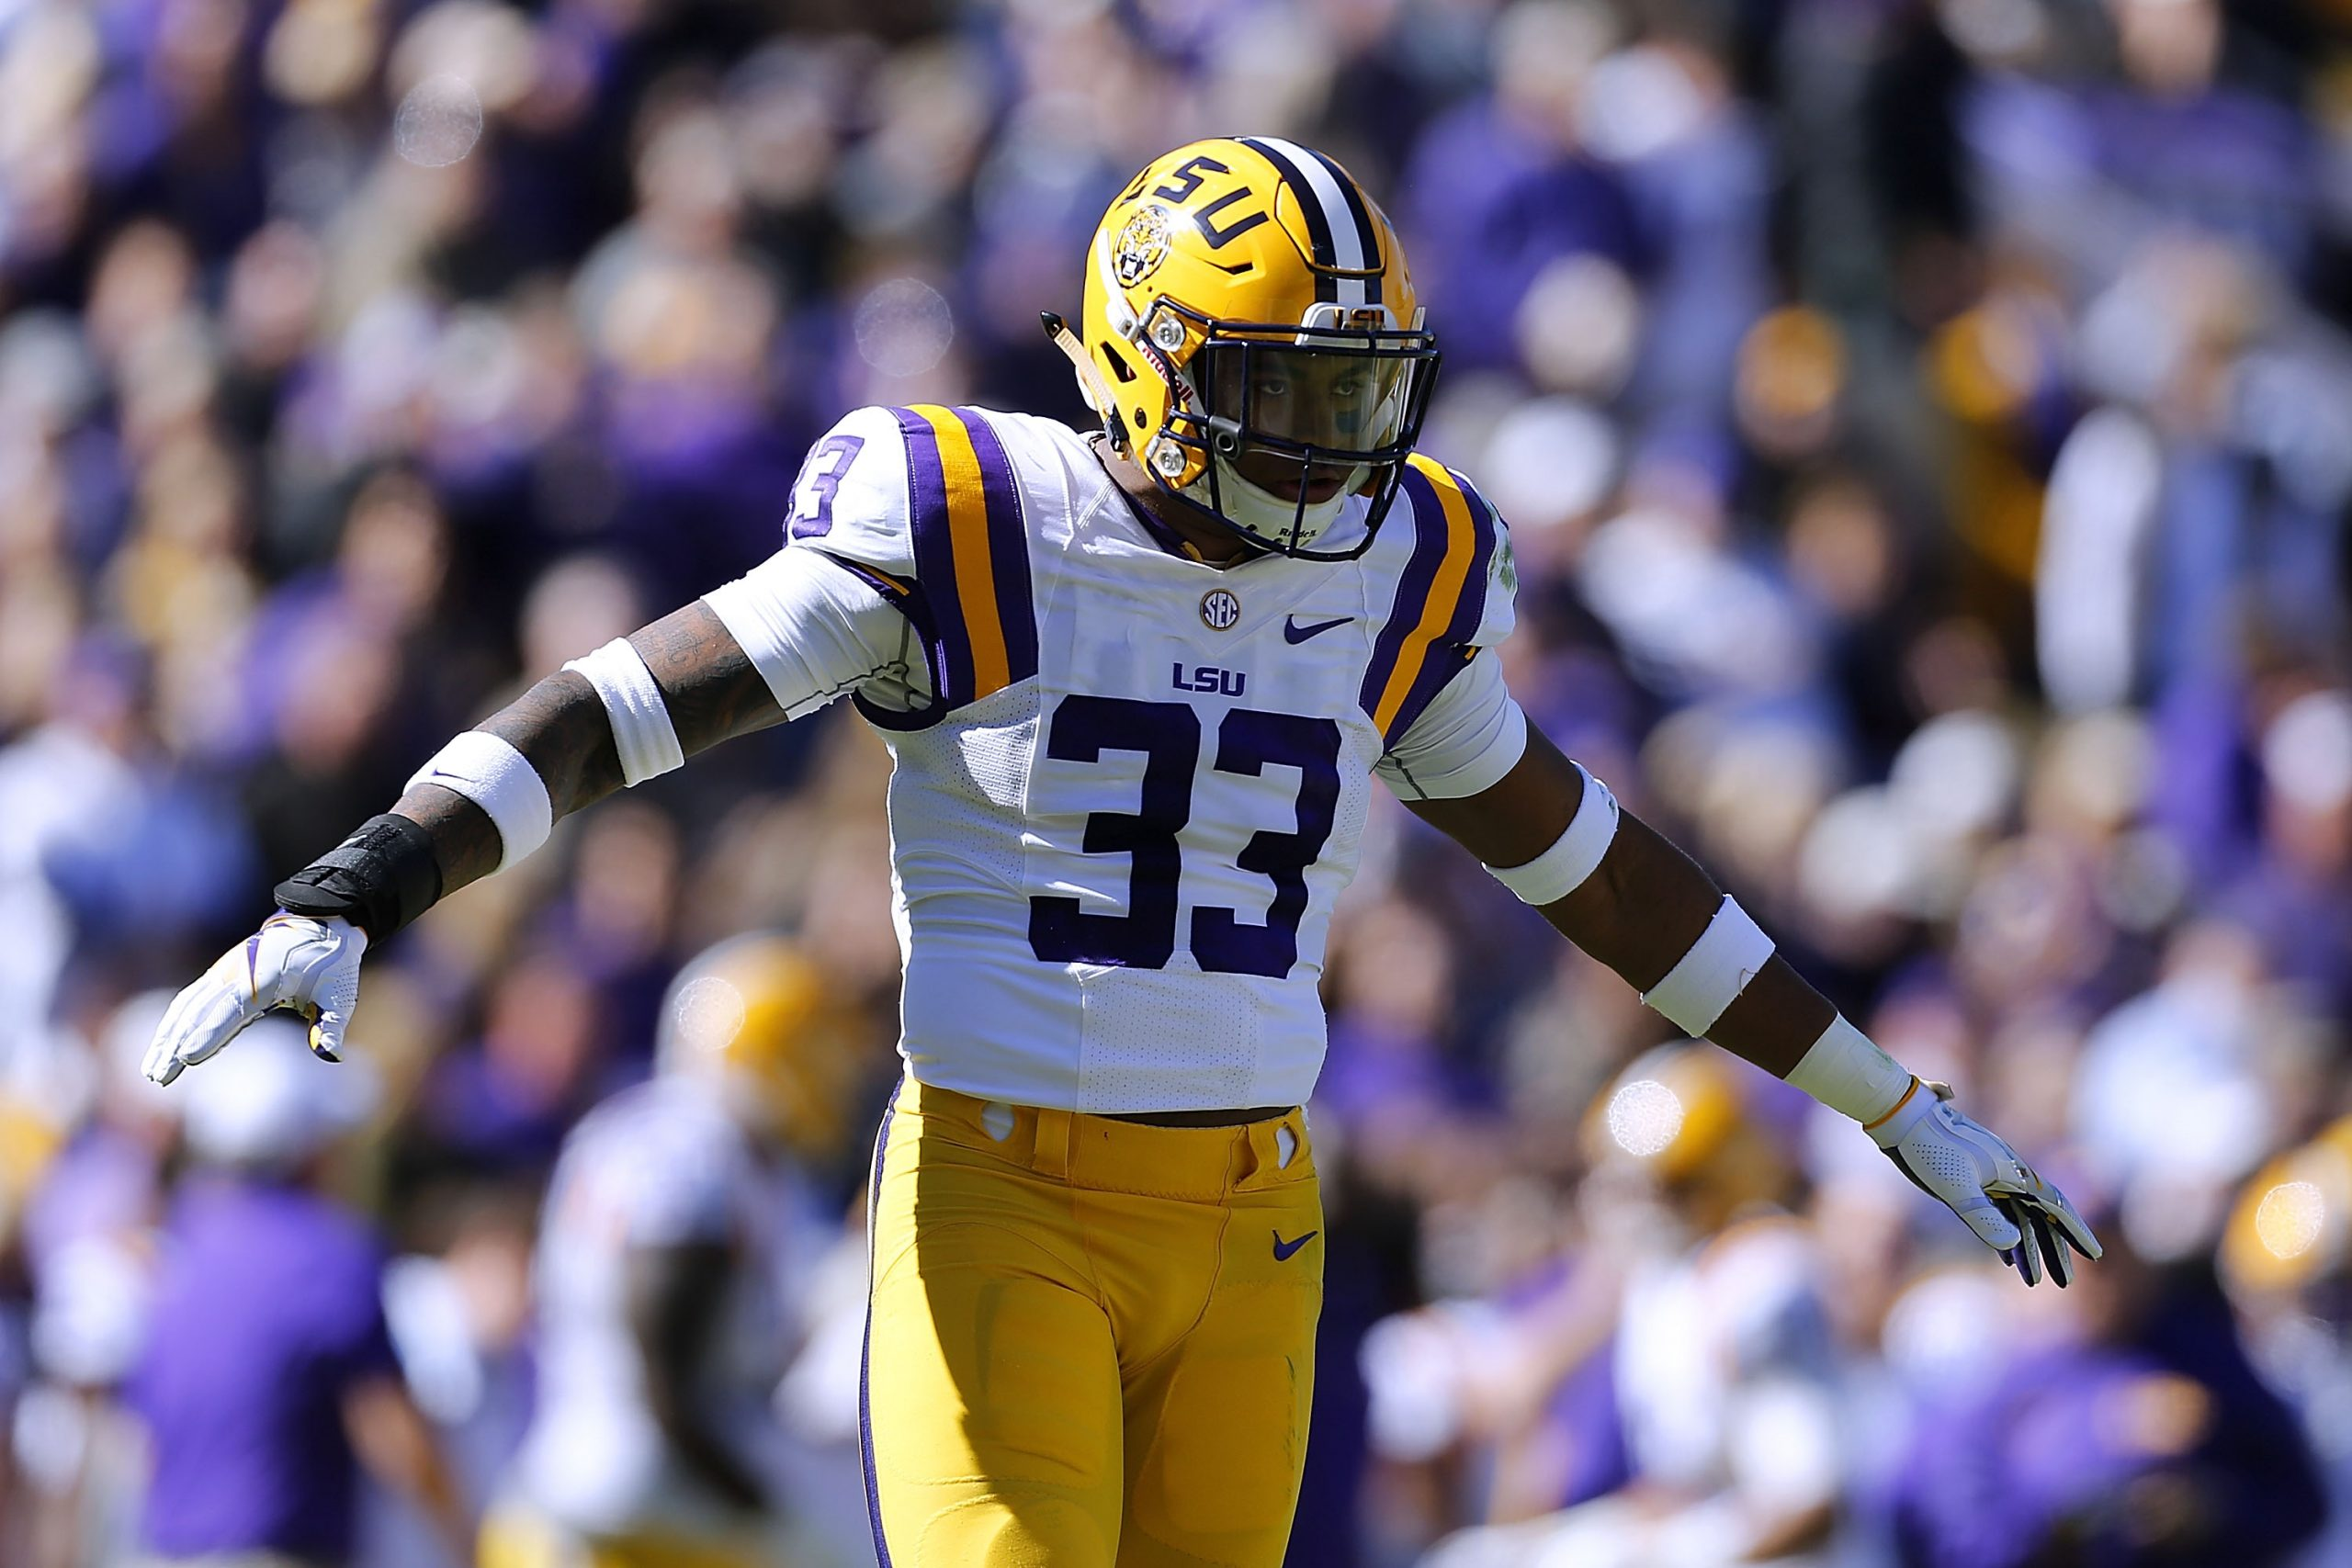 Jamal Adams to enter NFL Draft